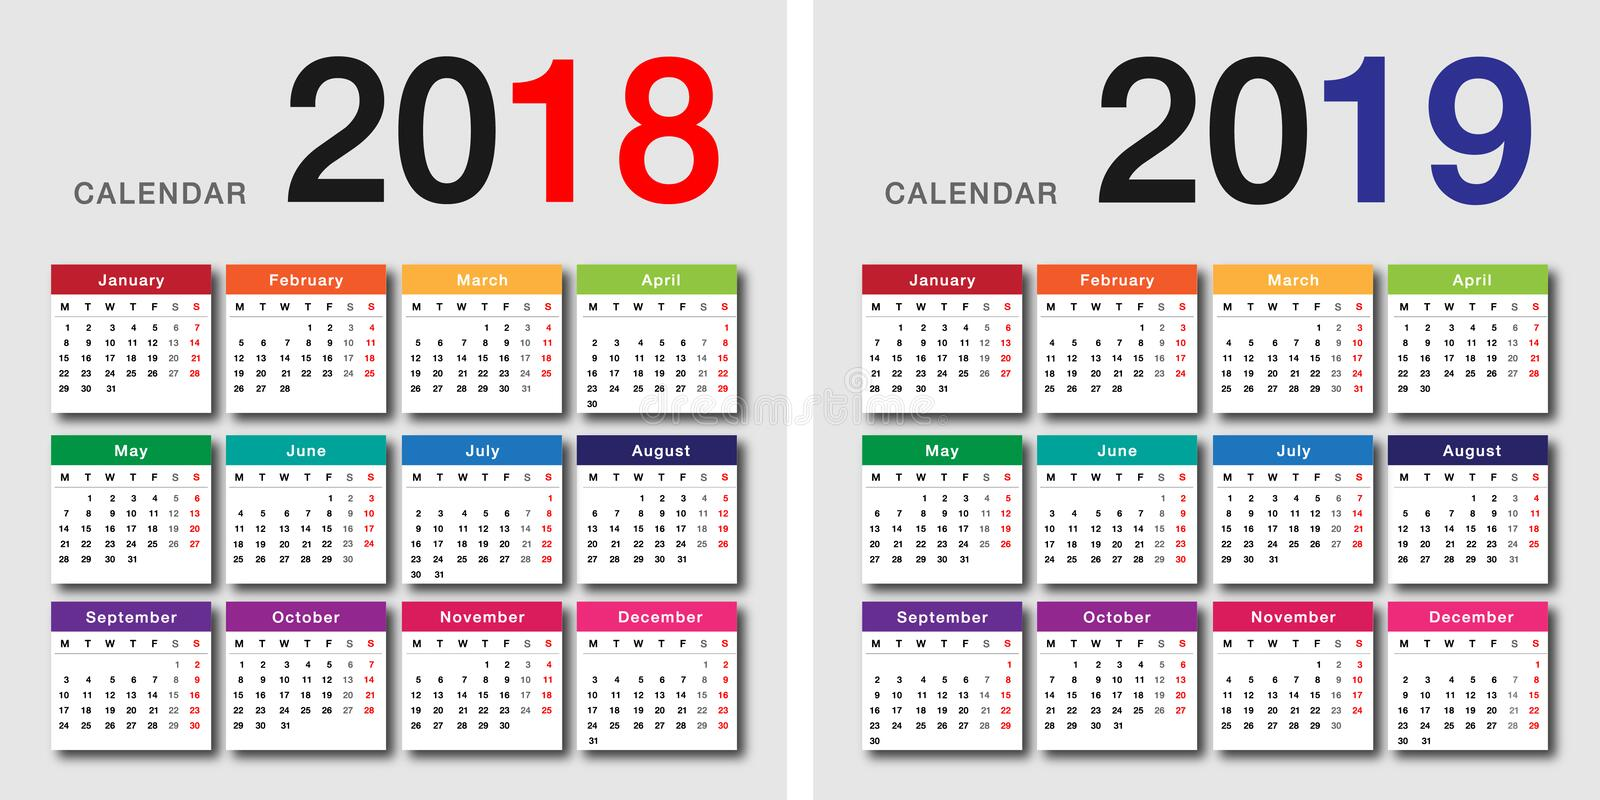 Year 2018 and Year 2019 calendar vector design vector illustration